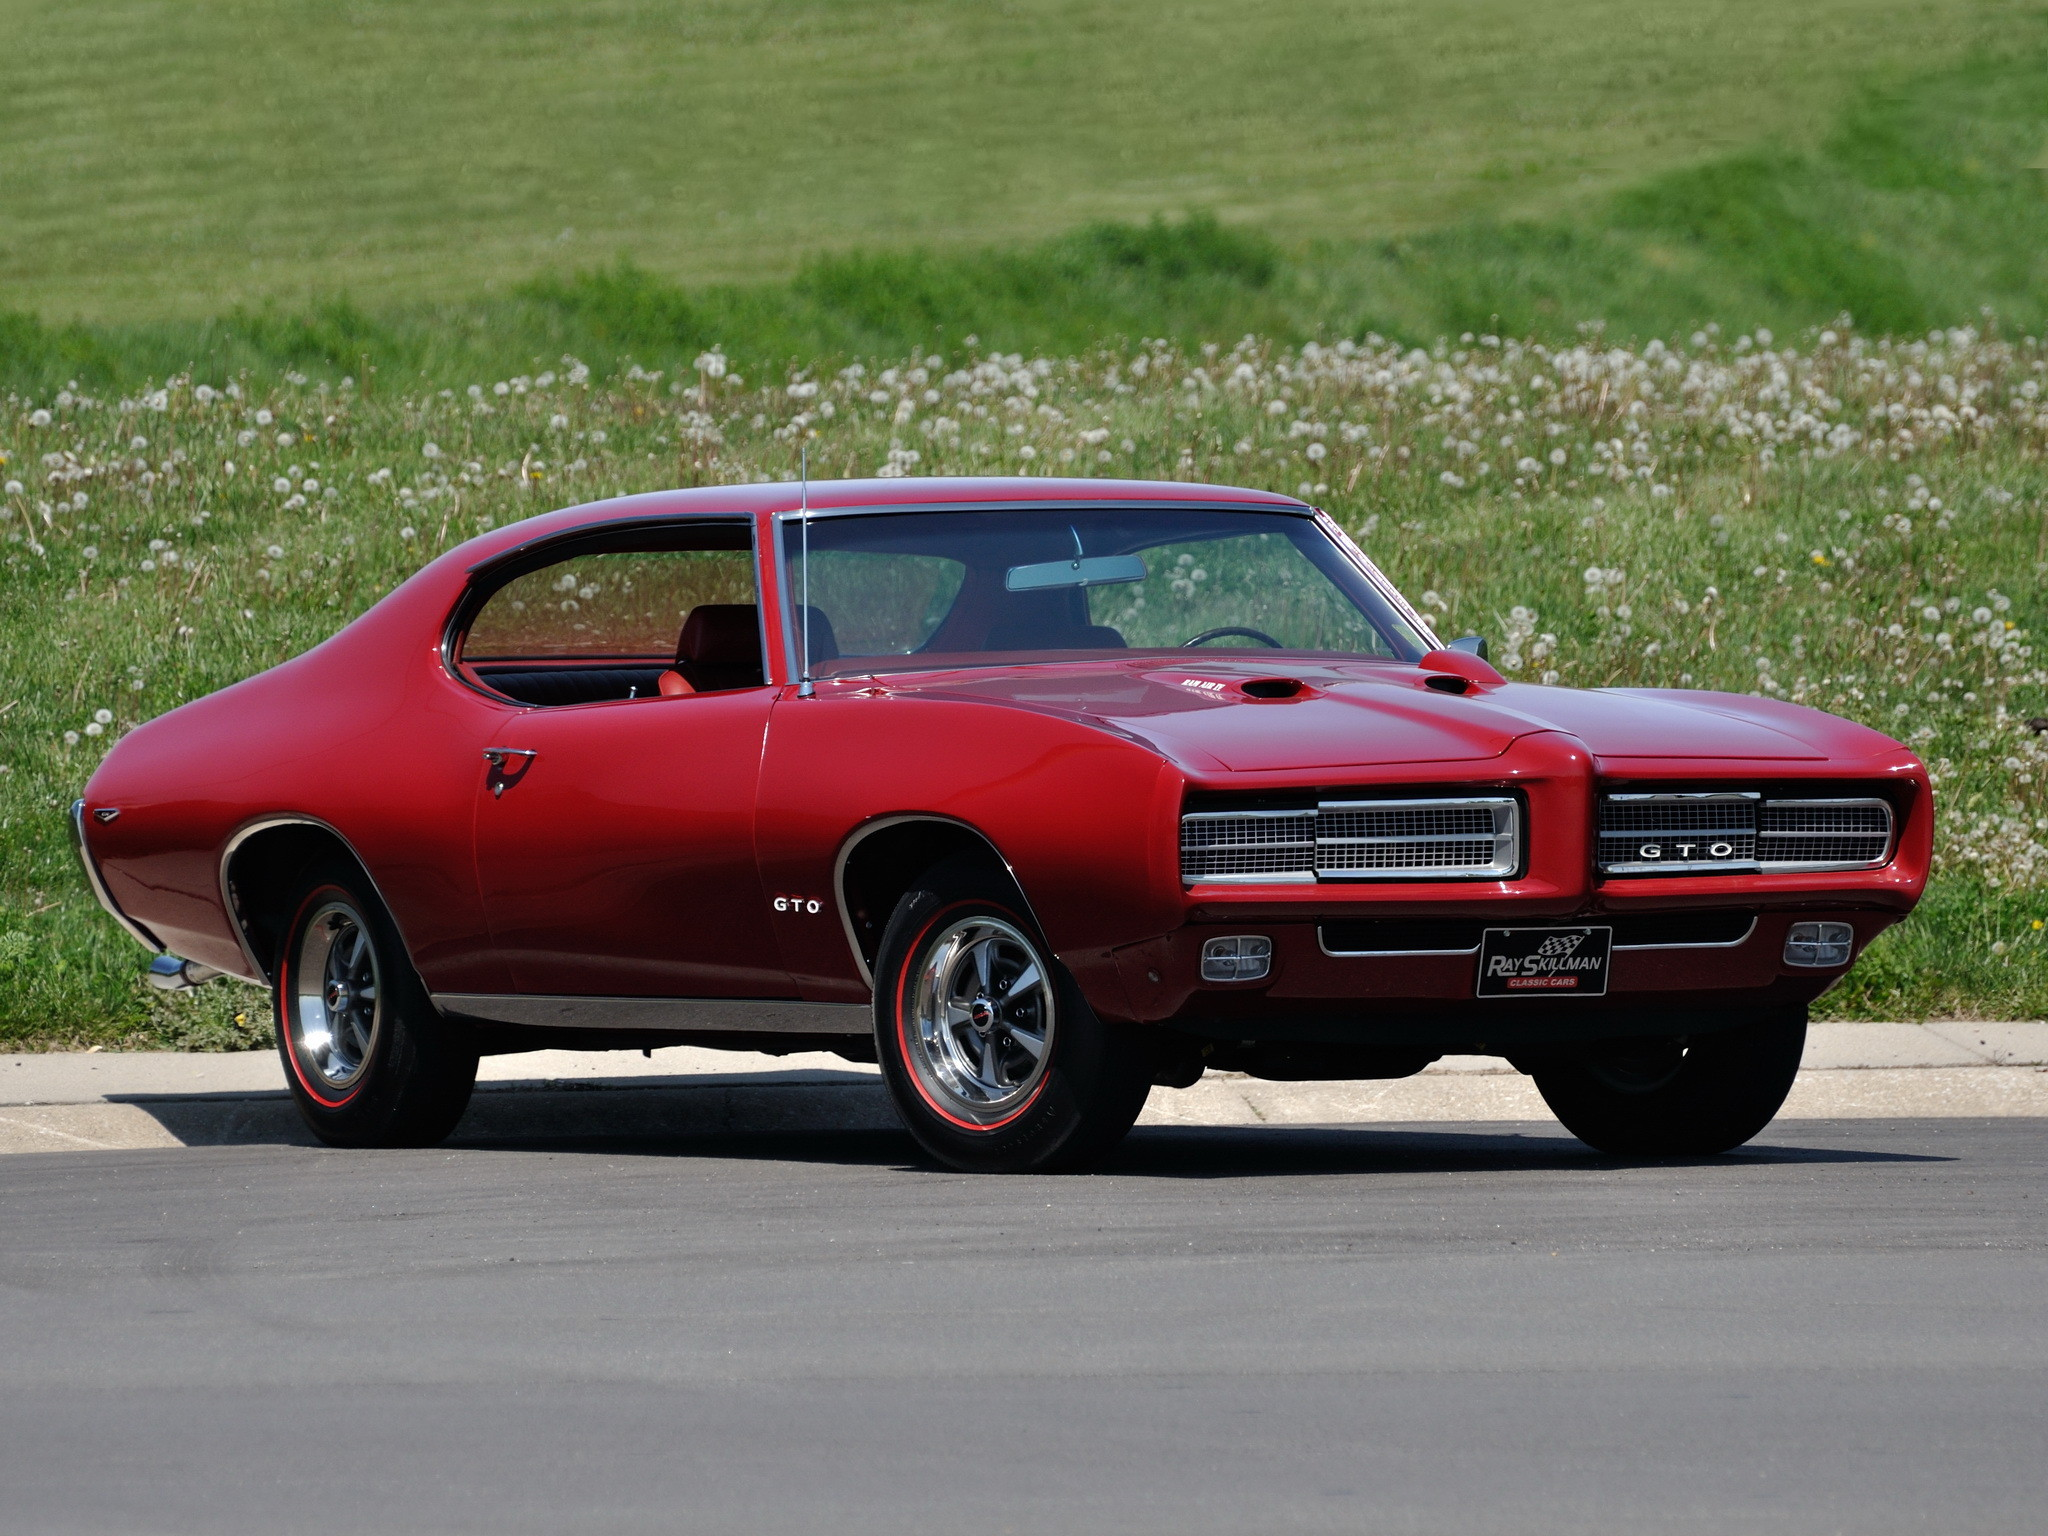 2048x1536 Reliable car Pontiac GTO 1969 wallpapers and images - wallpapers, pictures,  photos